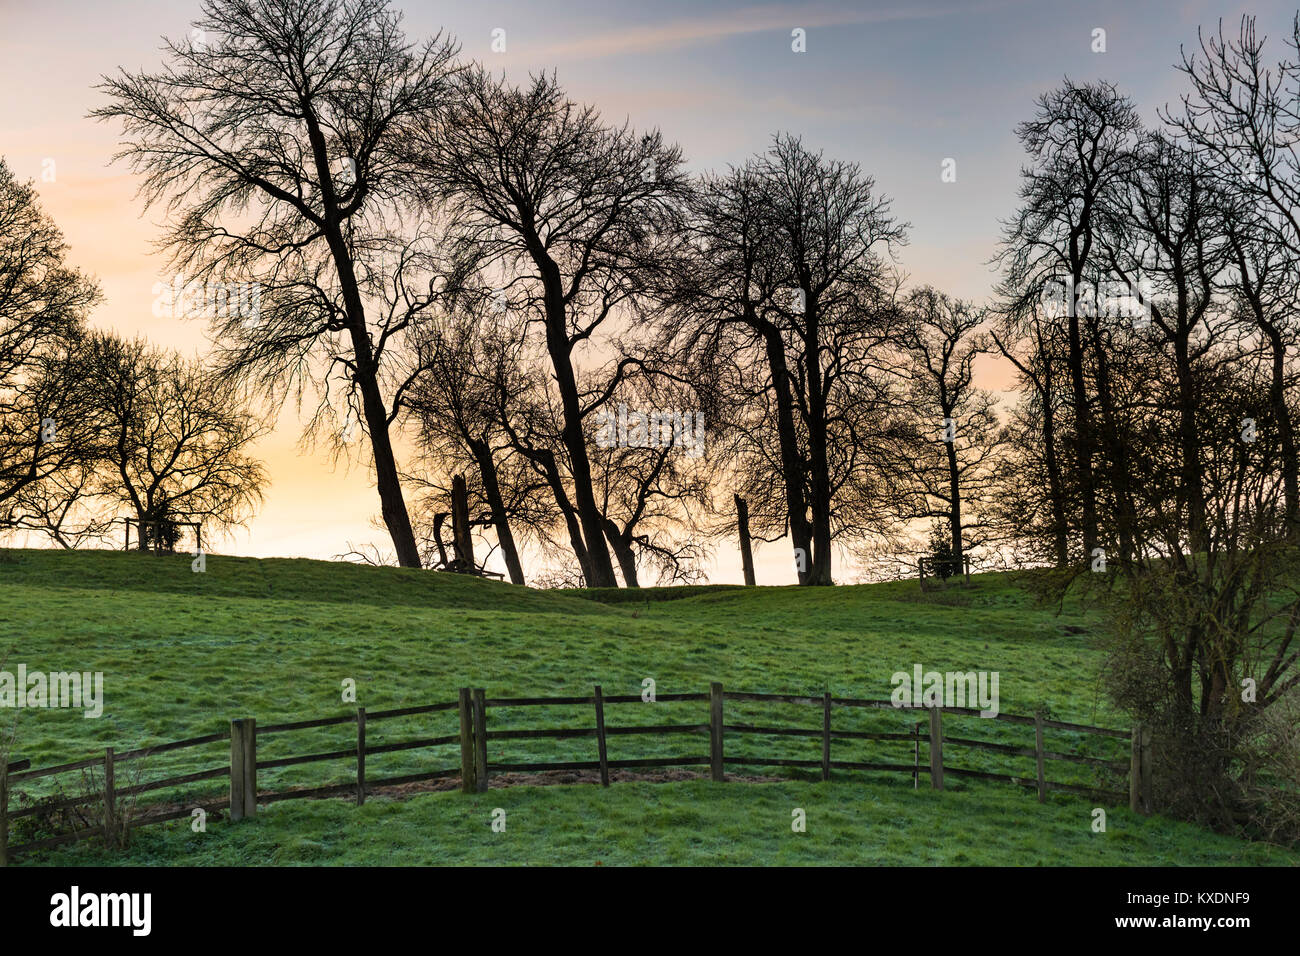 Looking through bare trees to a bright sky just before sunrise in Winter in the British countryside, UK. - Stock Image